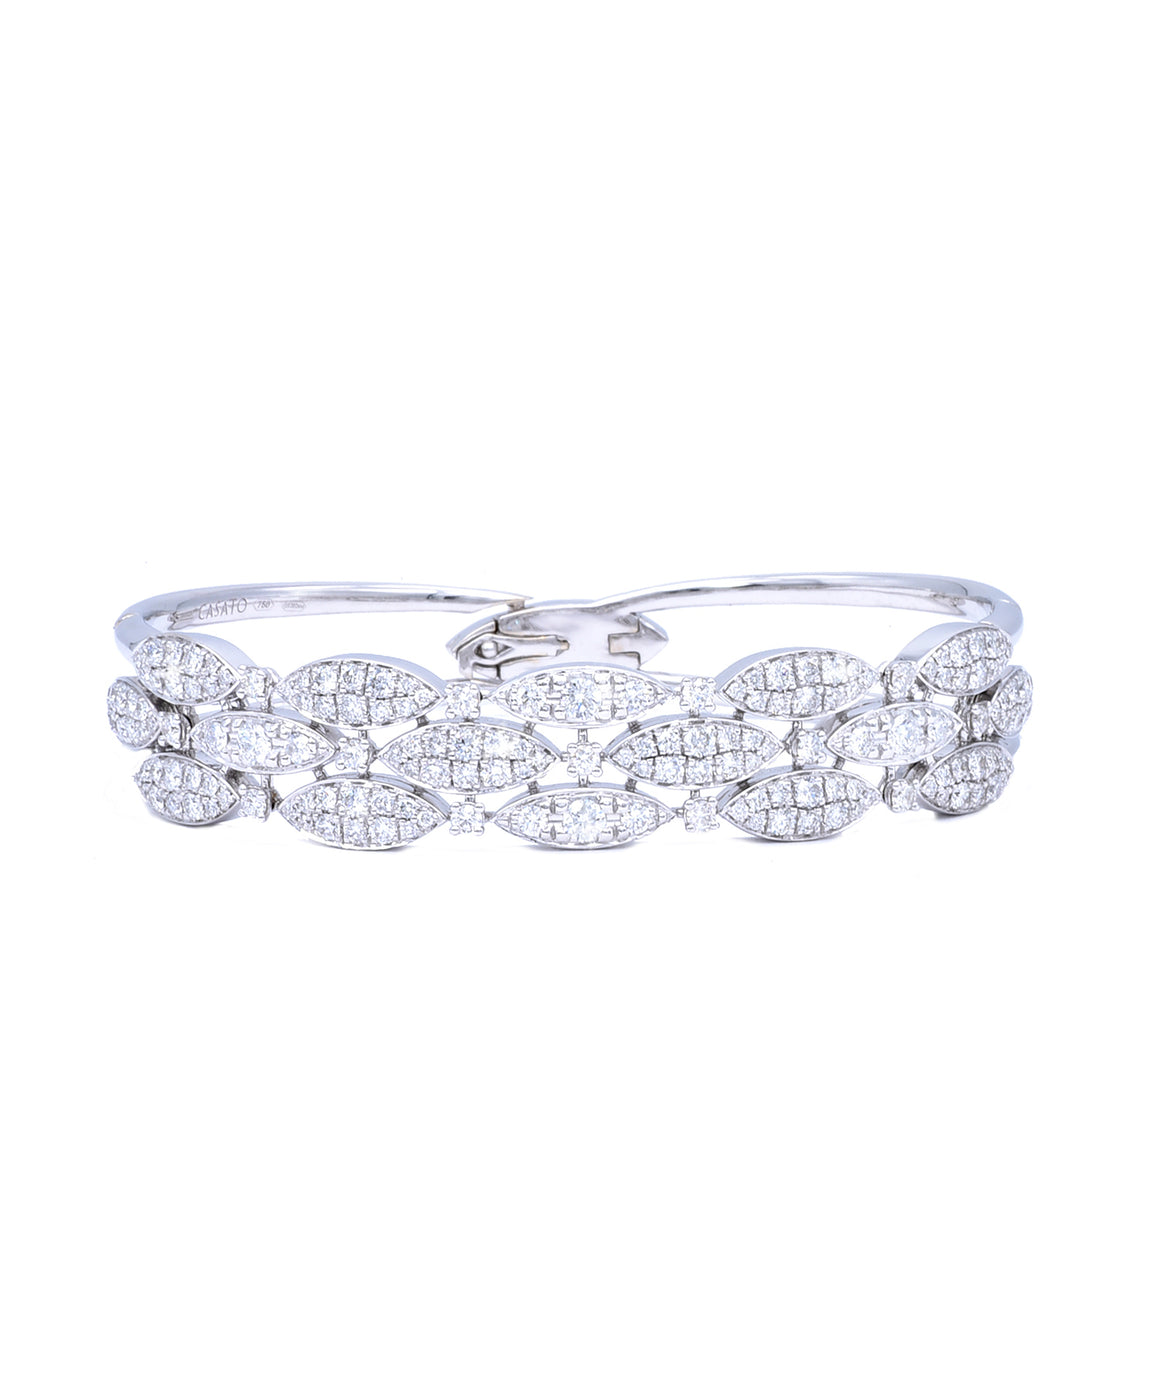 Diamond Marquise Hinged Bangle - Lesley Ann Jewels